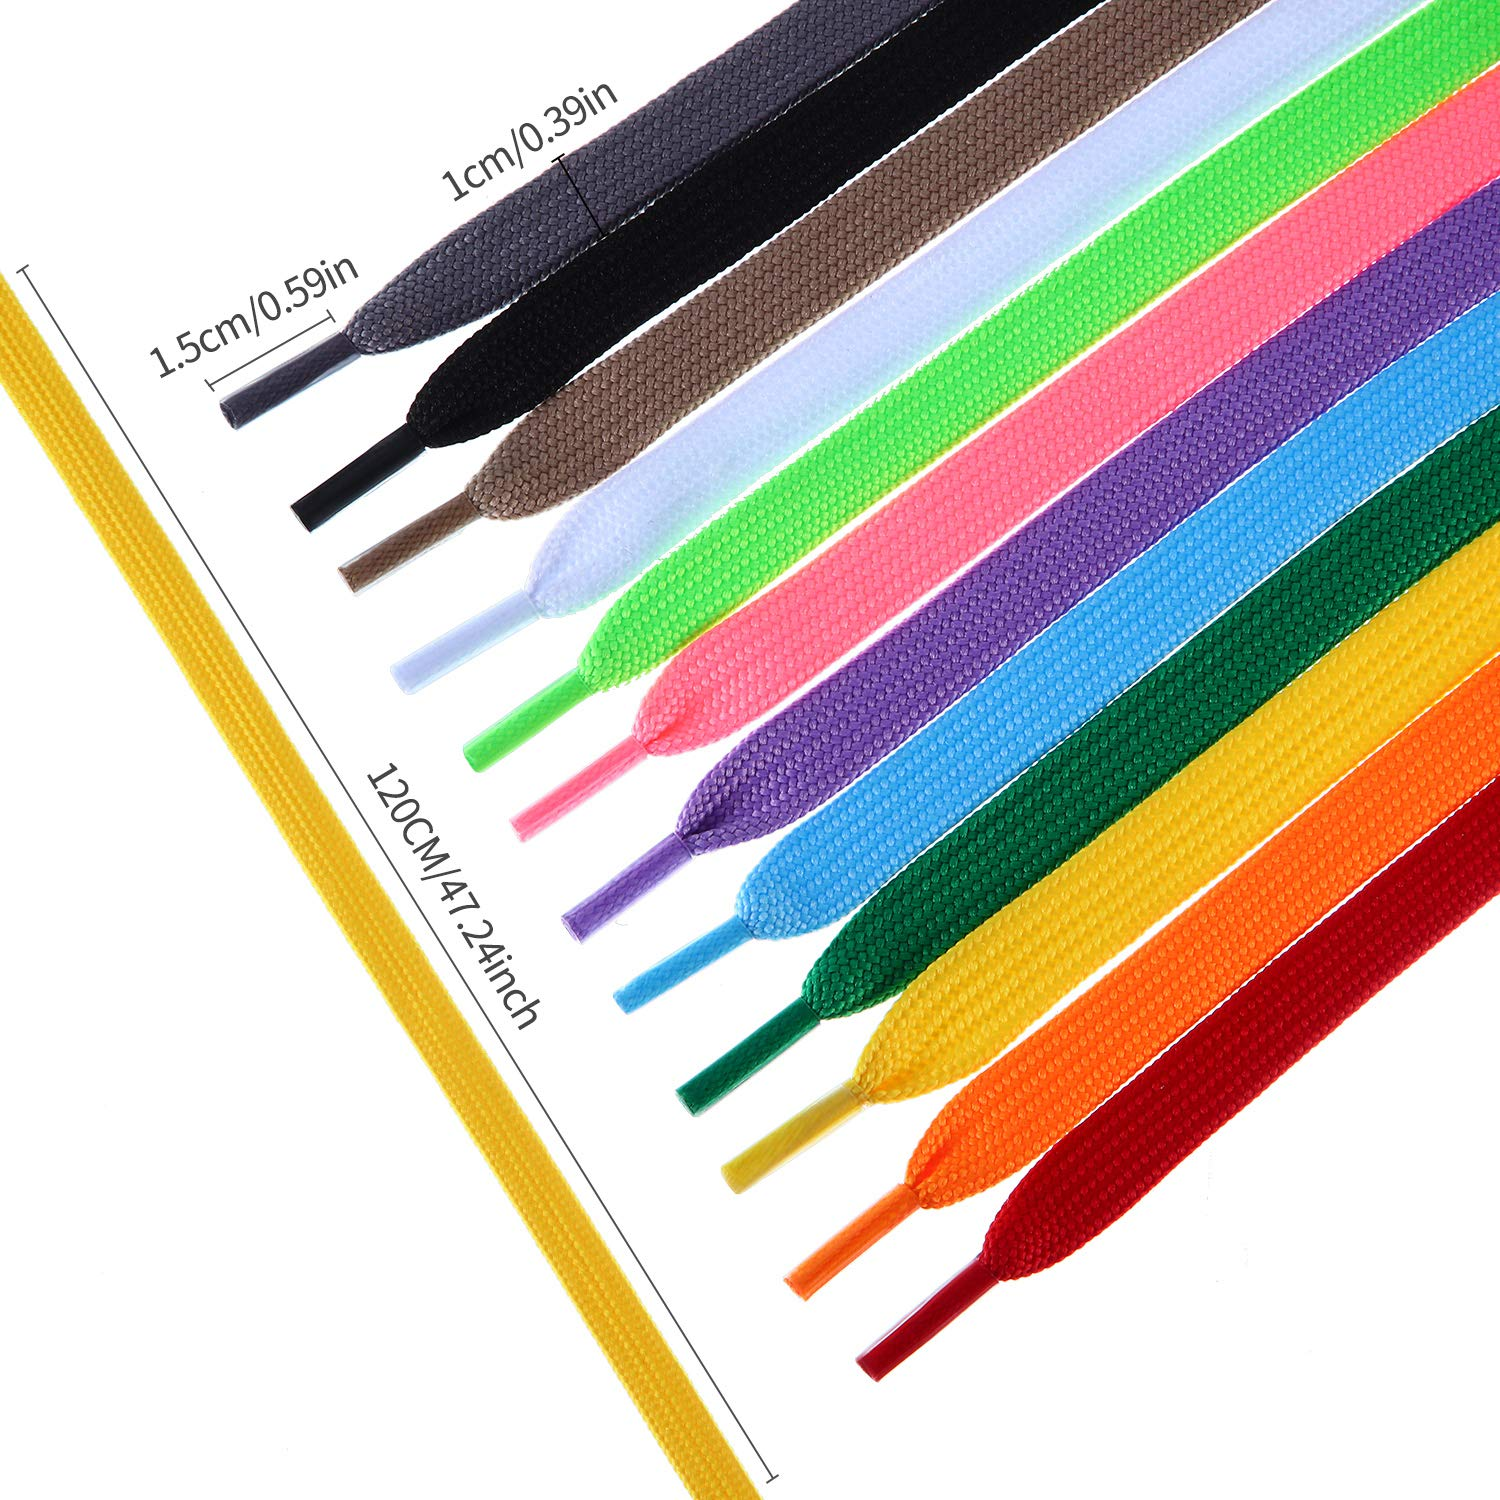 47.24 Inch 28 Pieces Replacement Drawstring Universal Drawstring Flexible Easy Threader for Sweater Jacket Coat Pant Swim Trunk Shoe Laces